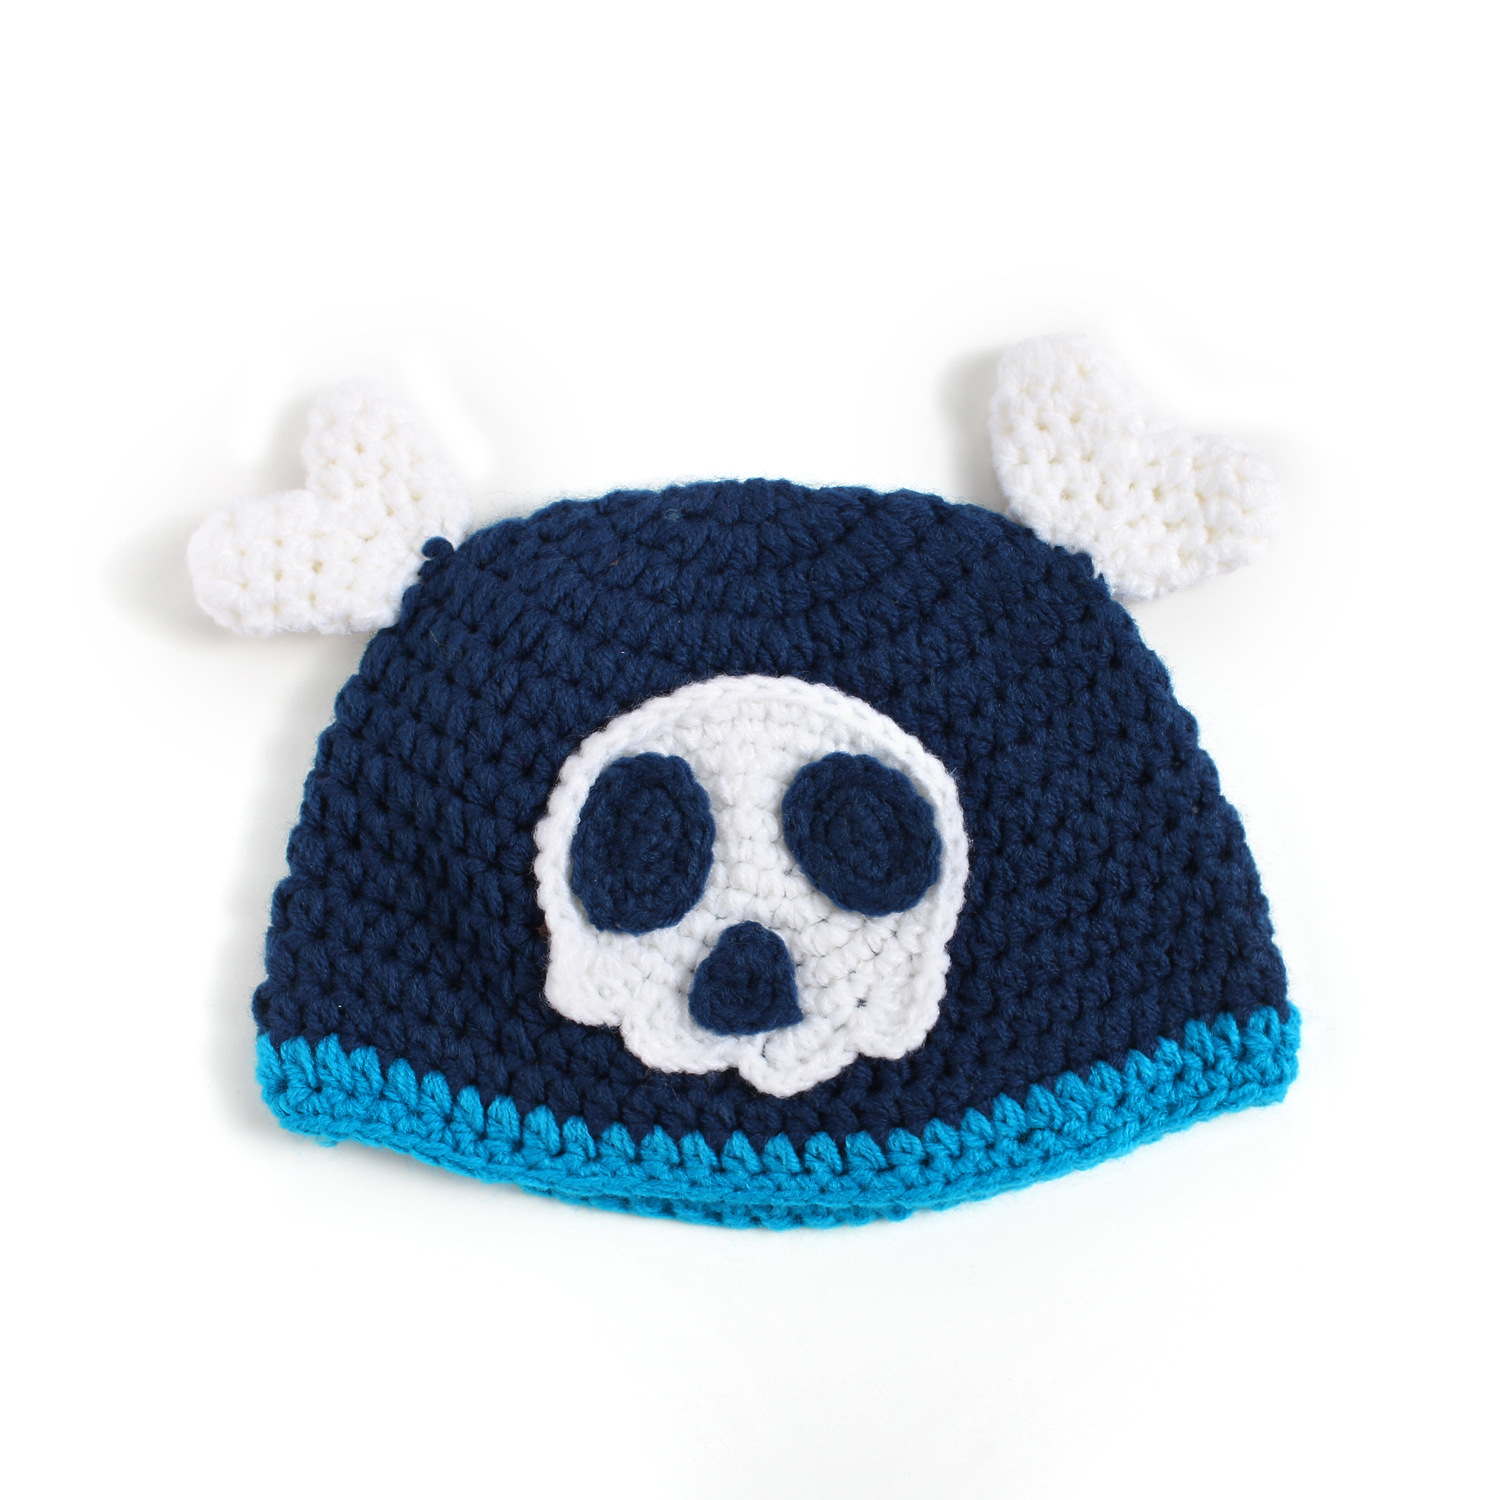 2016 New Arrival 100 Days Newborn Baby Handmade Knitted Hat Fashion Cartoon Skull Design Crochet Photo Props Pirate Caps